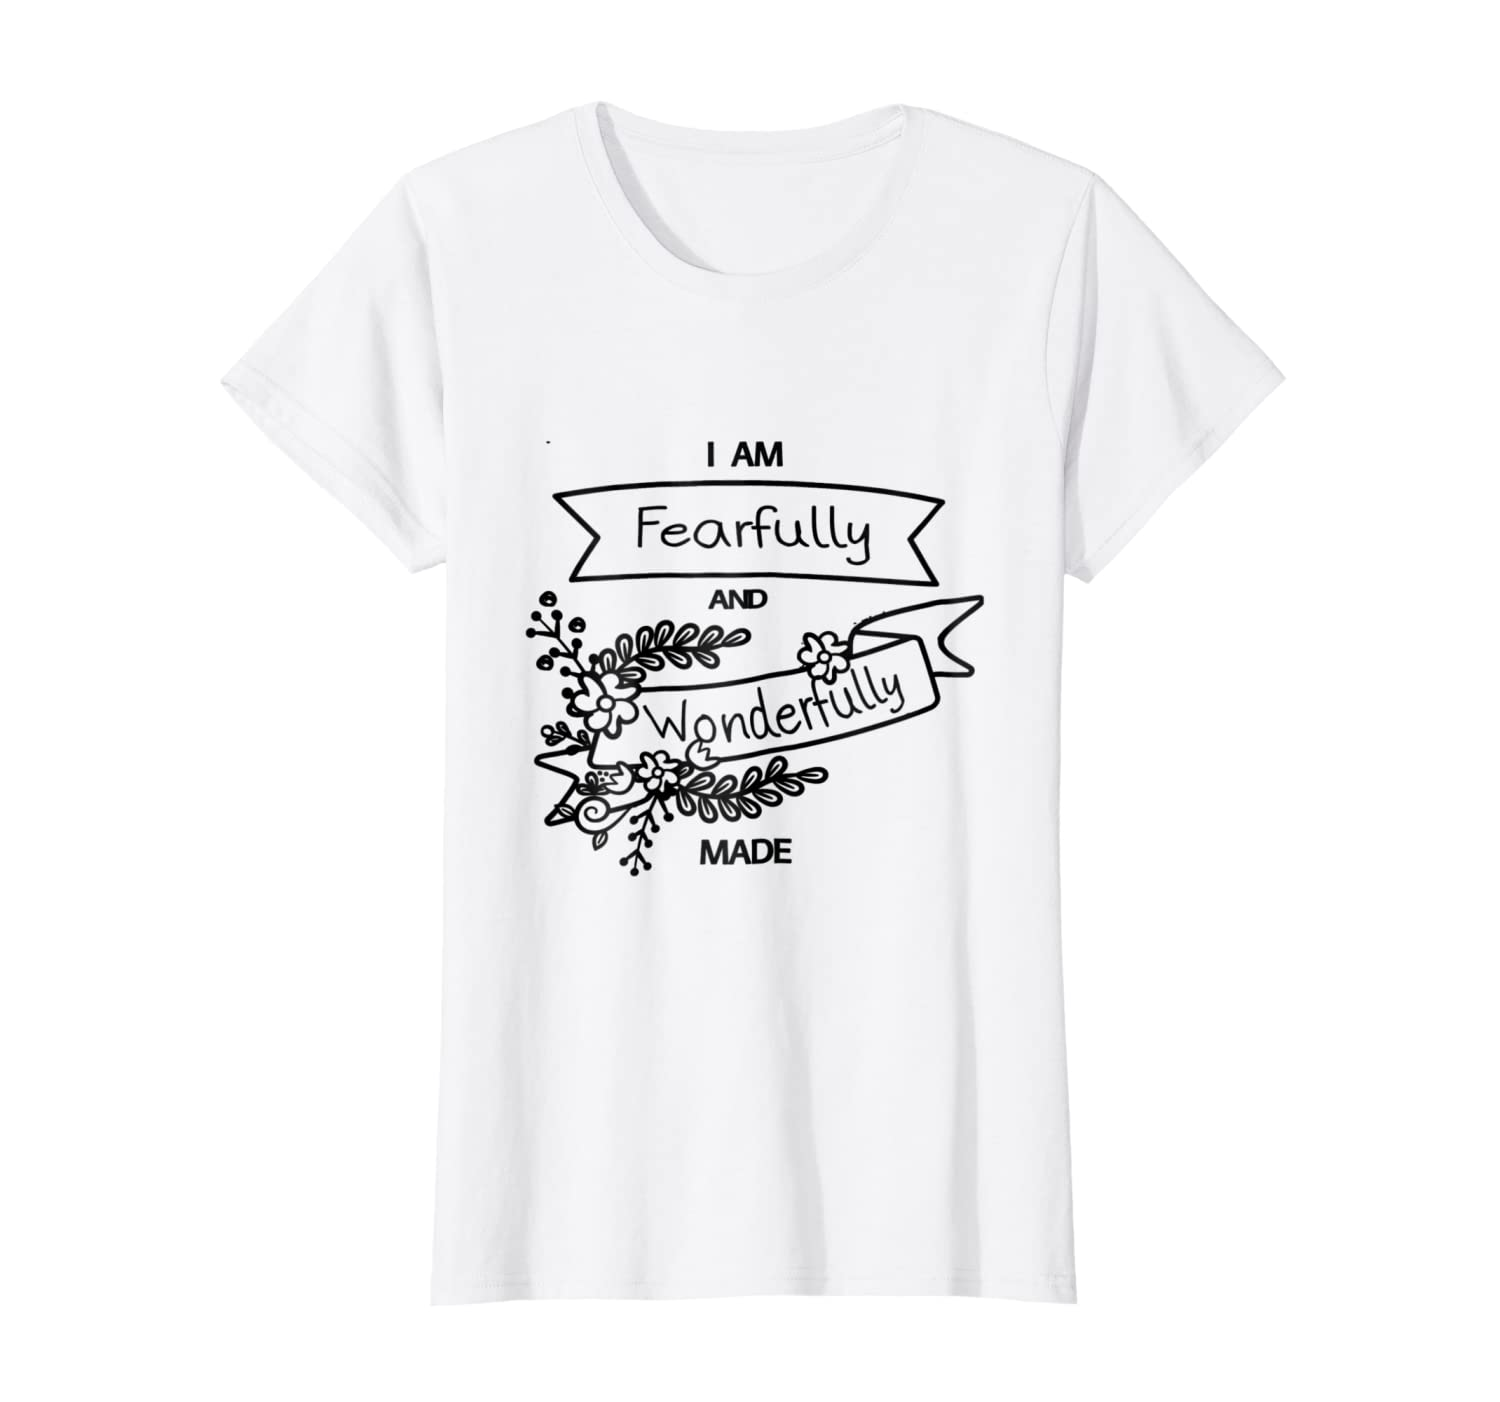 b03950039e86a I Am Fearfully and Wonderfully Made T-Shirt at Amazon Men's Clothing ...